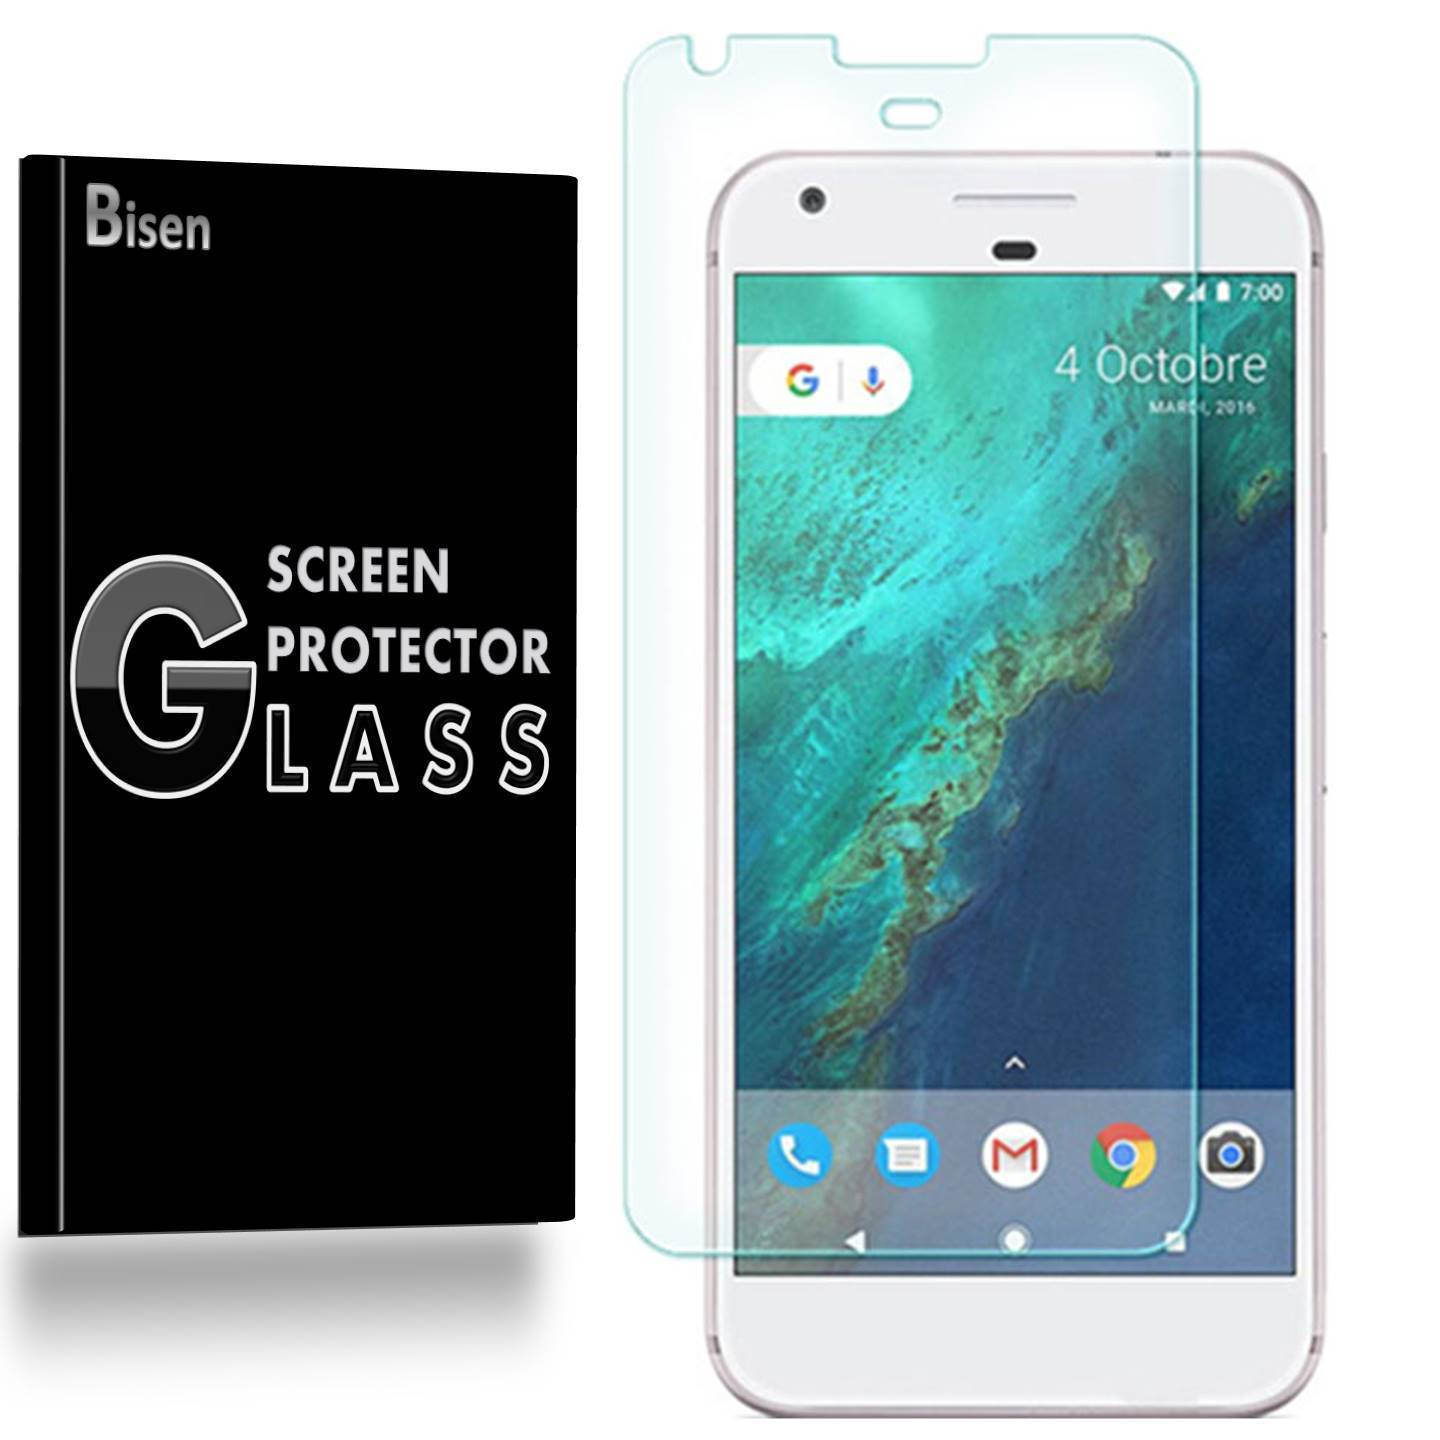 Google Pixel XL (2016 Release) [3-Pack BISEN] Screen Protector Tempered Glass, 9H Hardness, Anti-Scratch, Anti-Shock, Bubble Free, Shatterproof